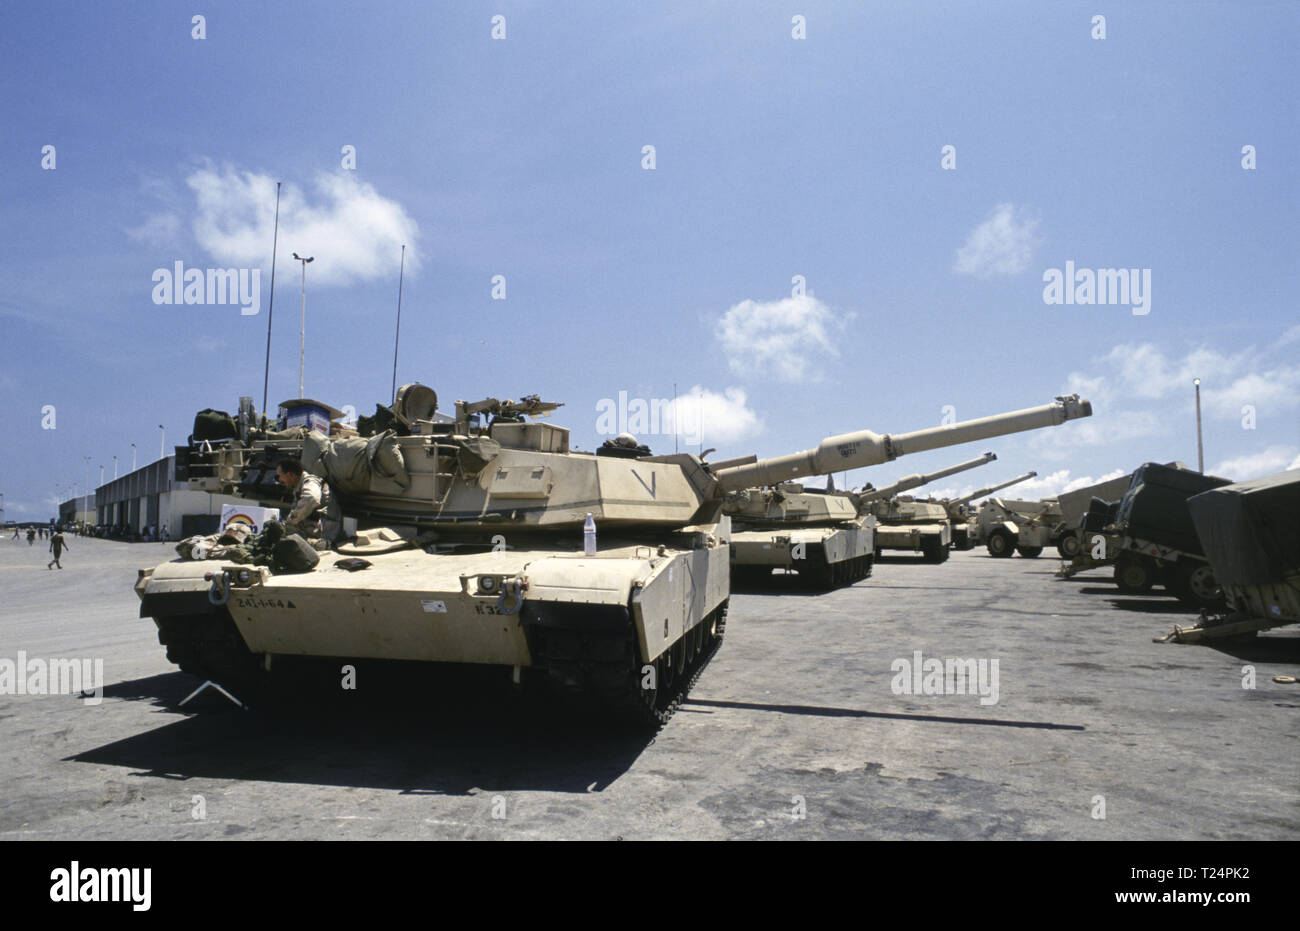 b522ec26493997 30th October 1993 U.S. Army M1A1 Abrams tanks of the 24th Infantry  Division, 1st Battalion of the 24th Infantry Division, 1st Battalion of the  64th Armored ...